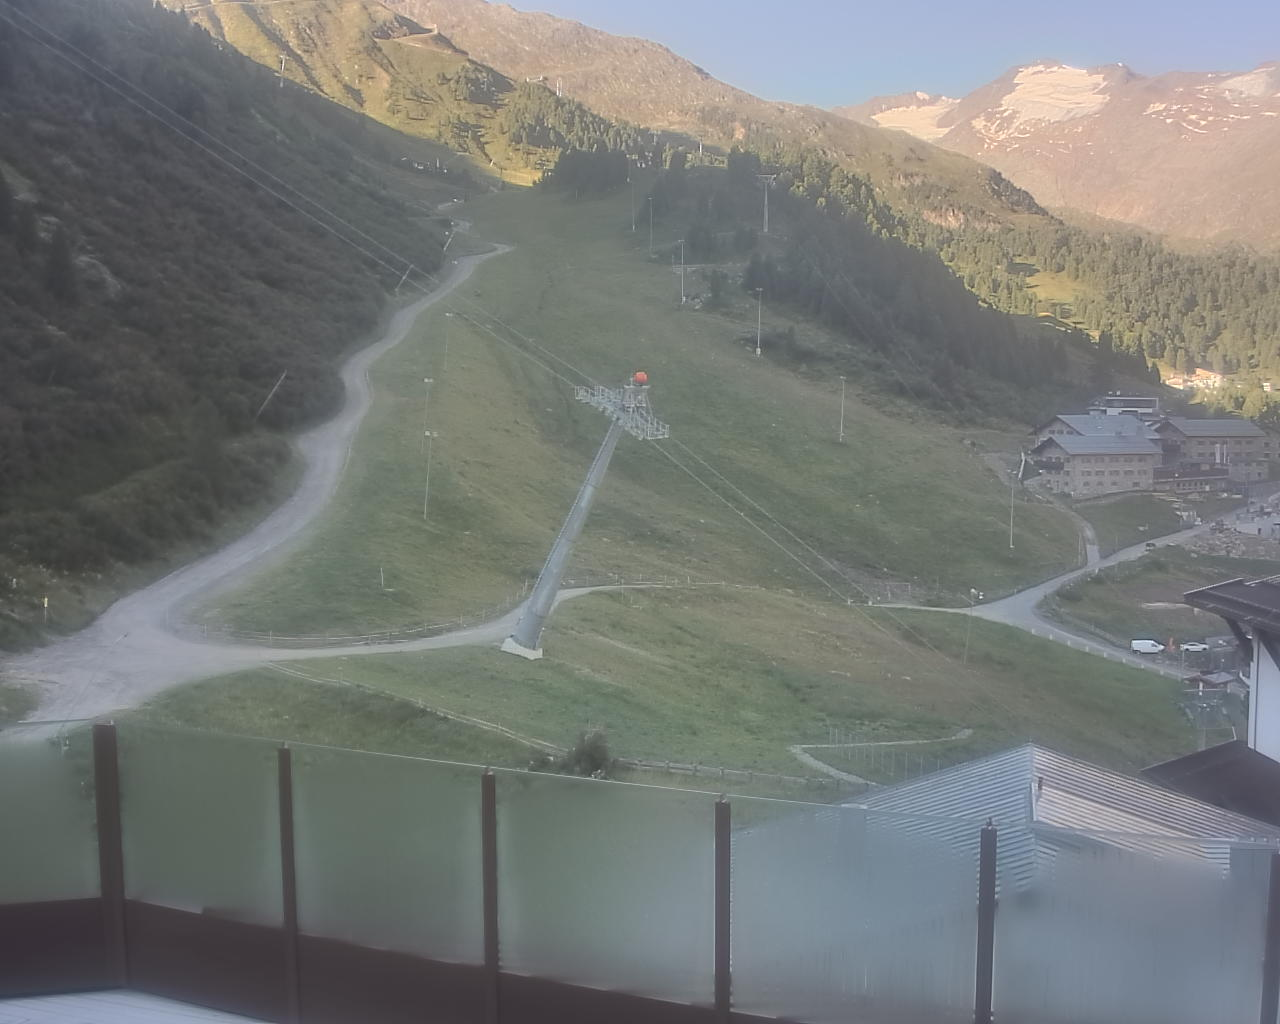 HotelAlpenland WebCam